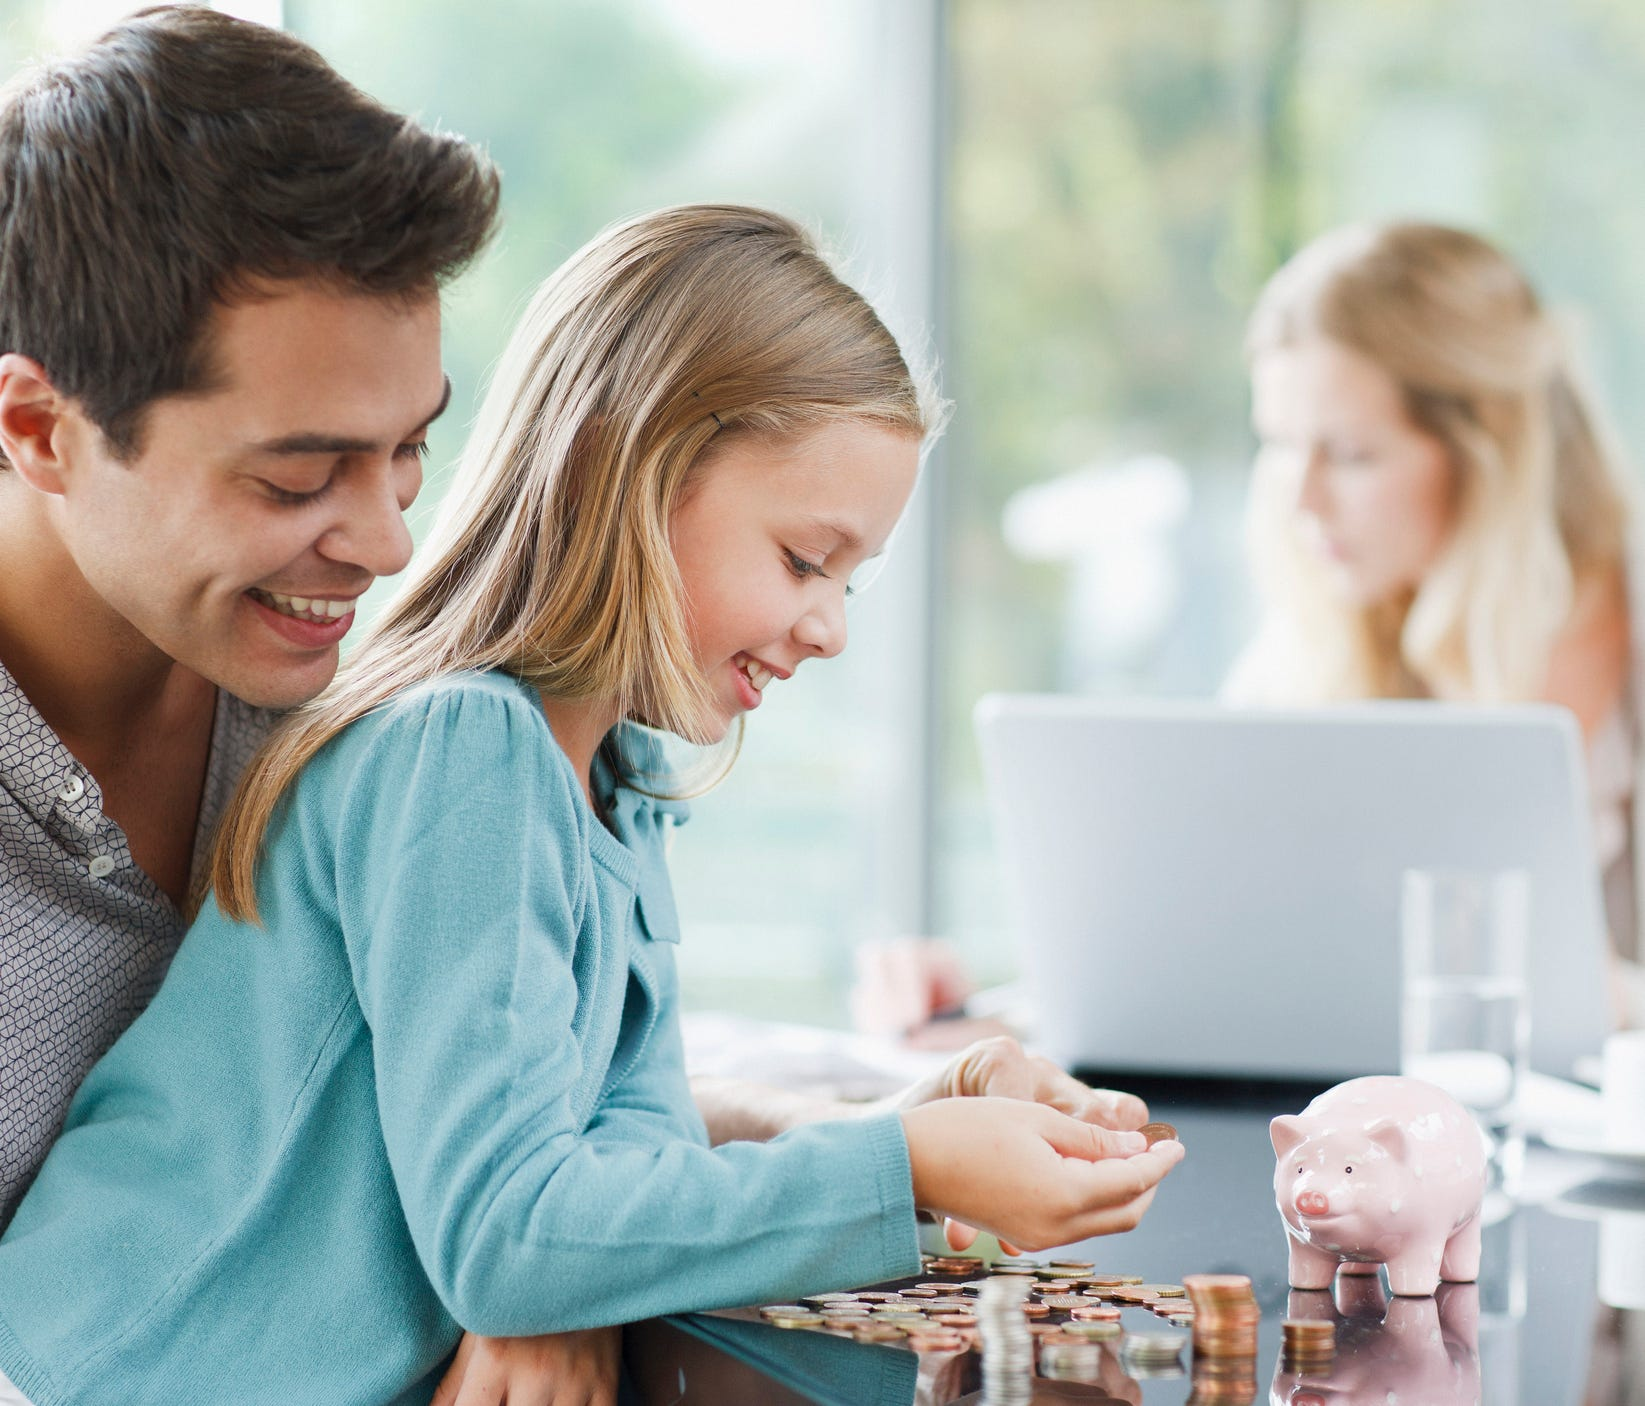 Some of the most valuable financial lessons you can impart should be shared right now, before your child heads out into the world.